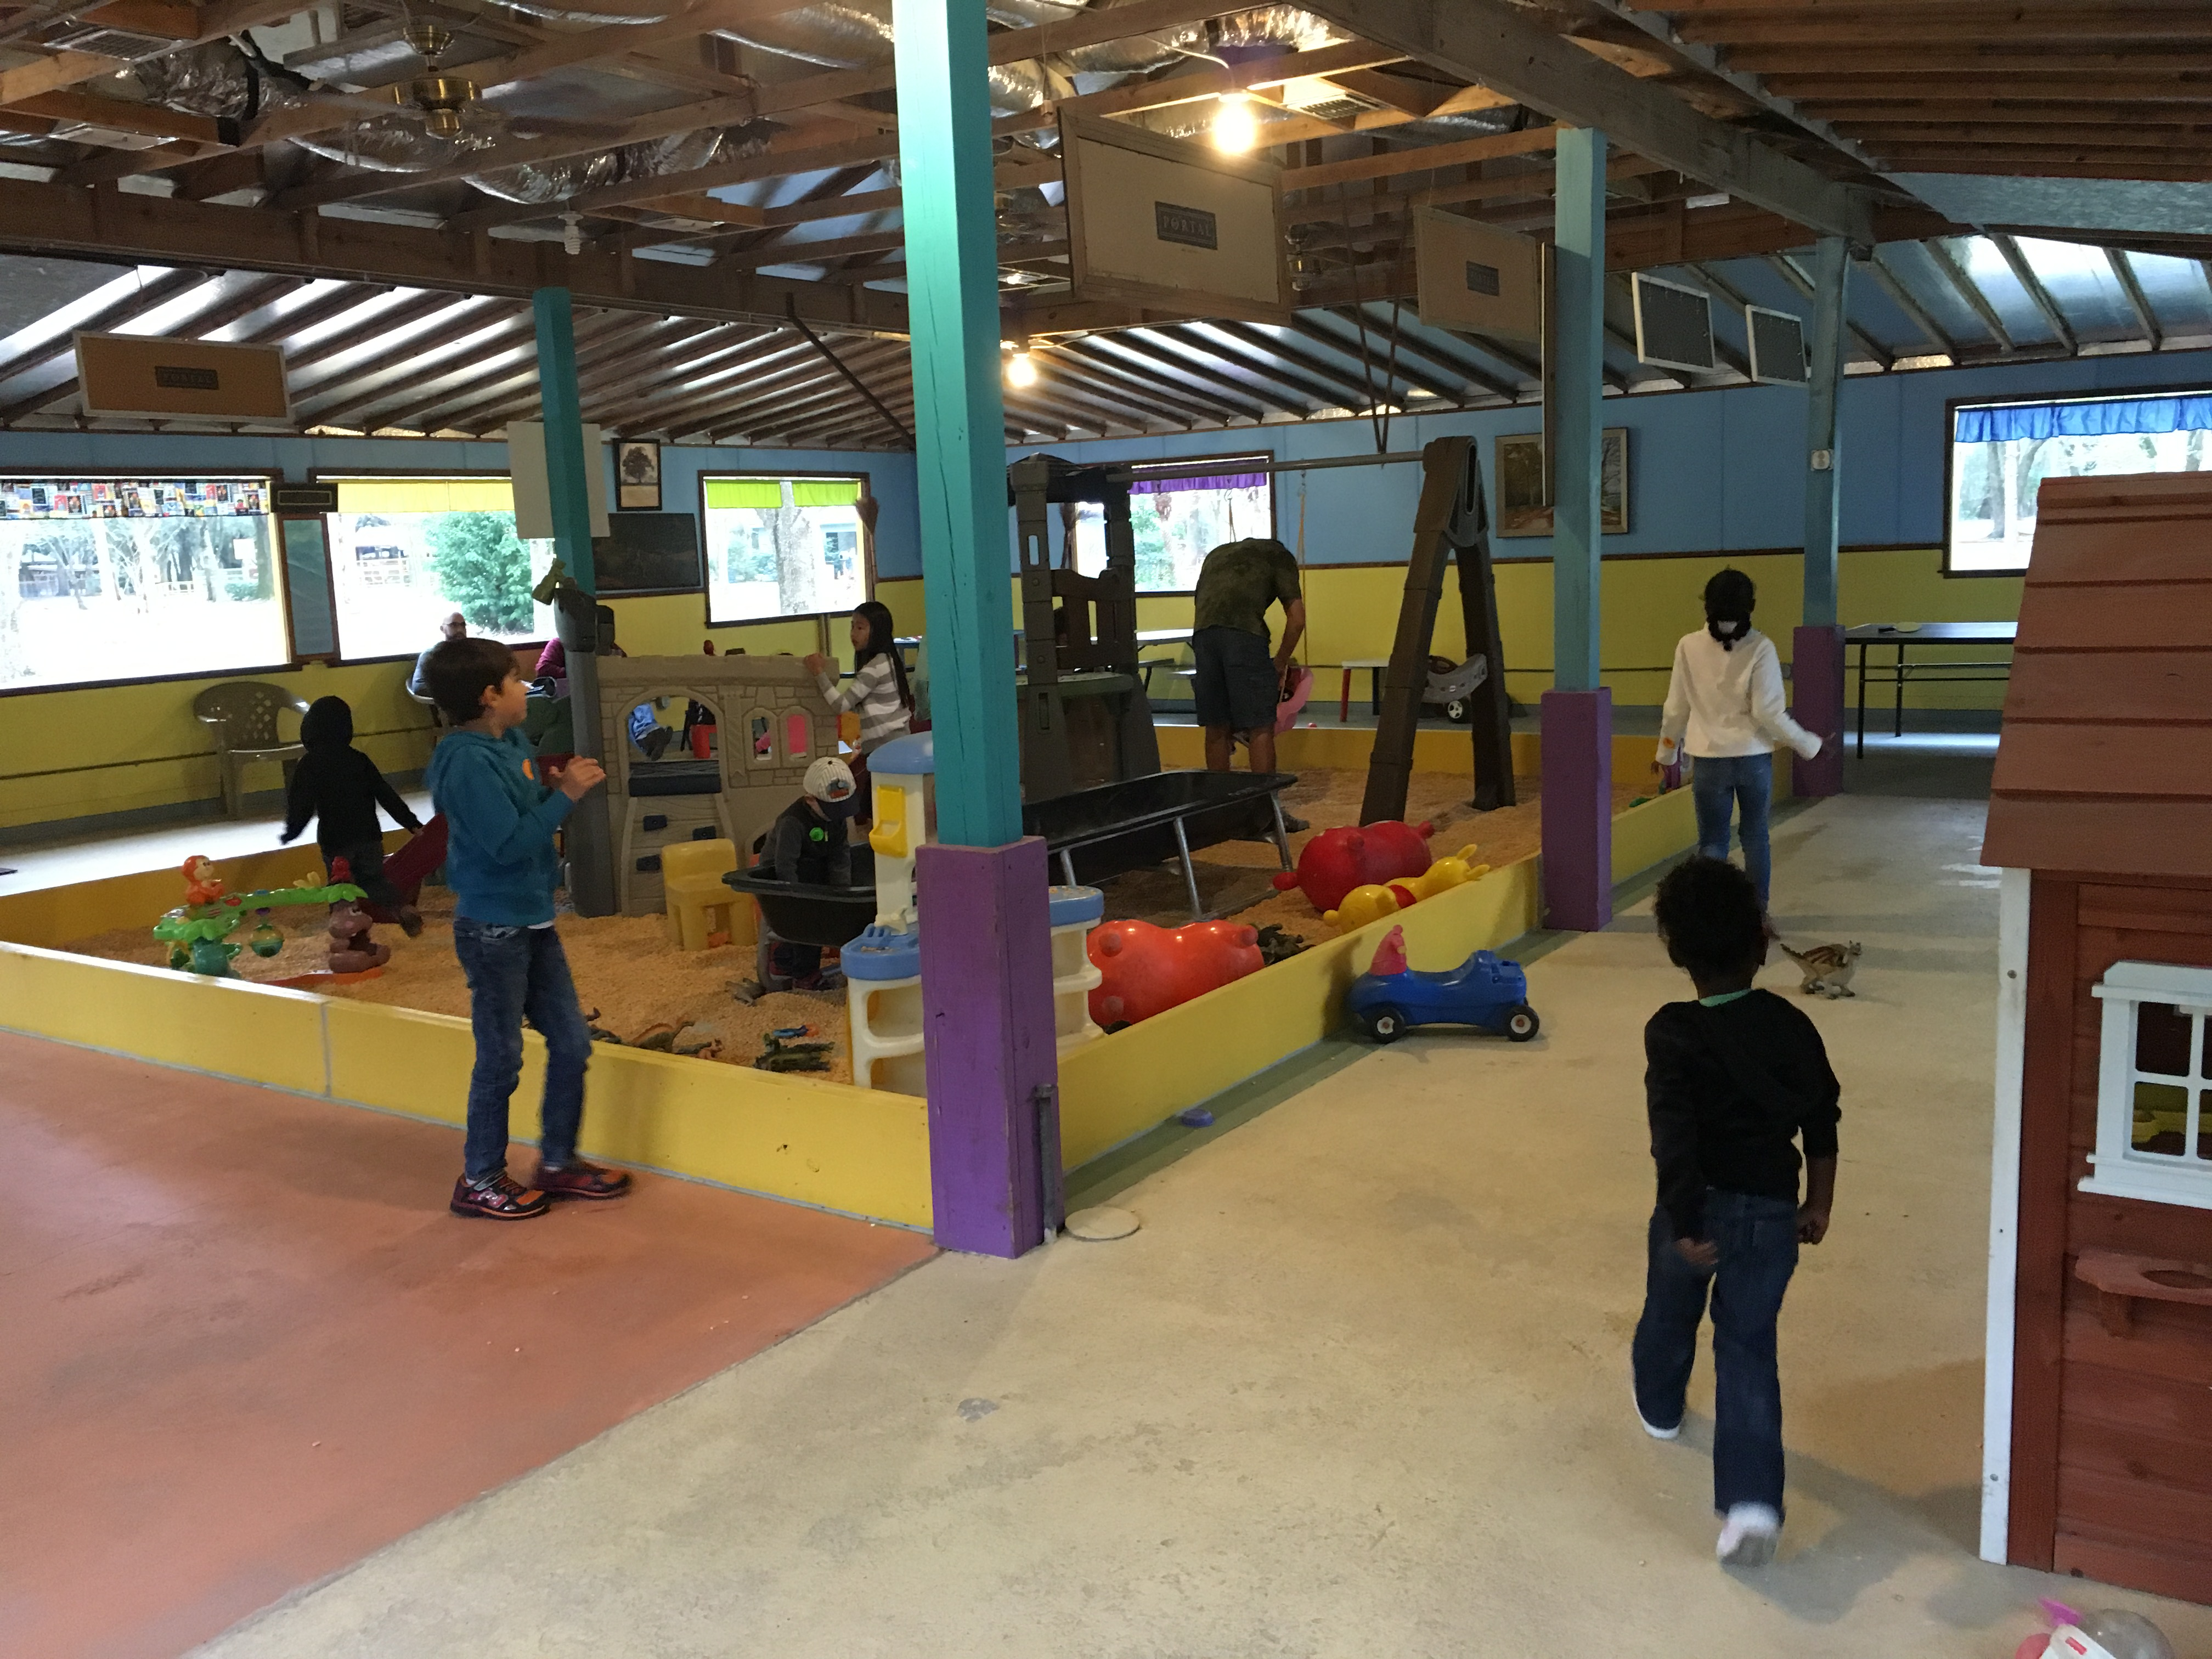 This indoor play ground was ingenious; it had a couple picnic tables and several chairs along the walls for parents to relax and watch their kiddies burn off some energy